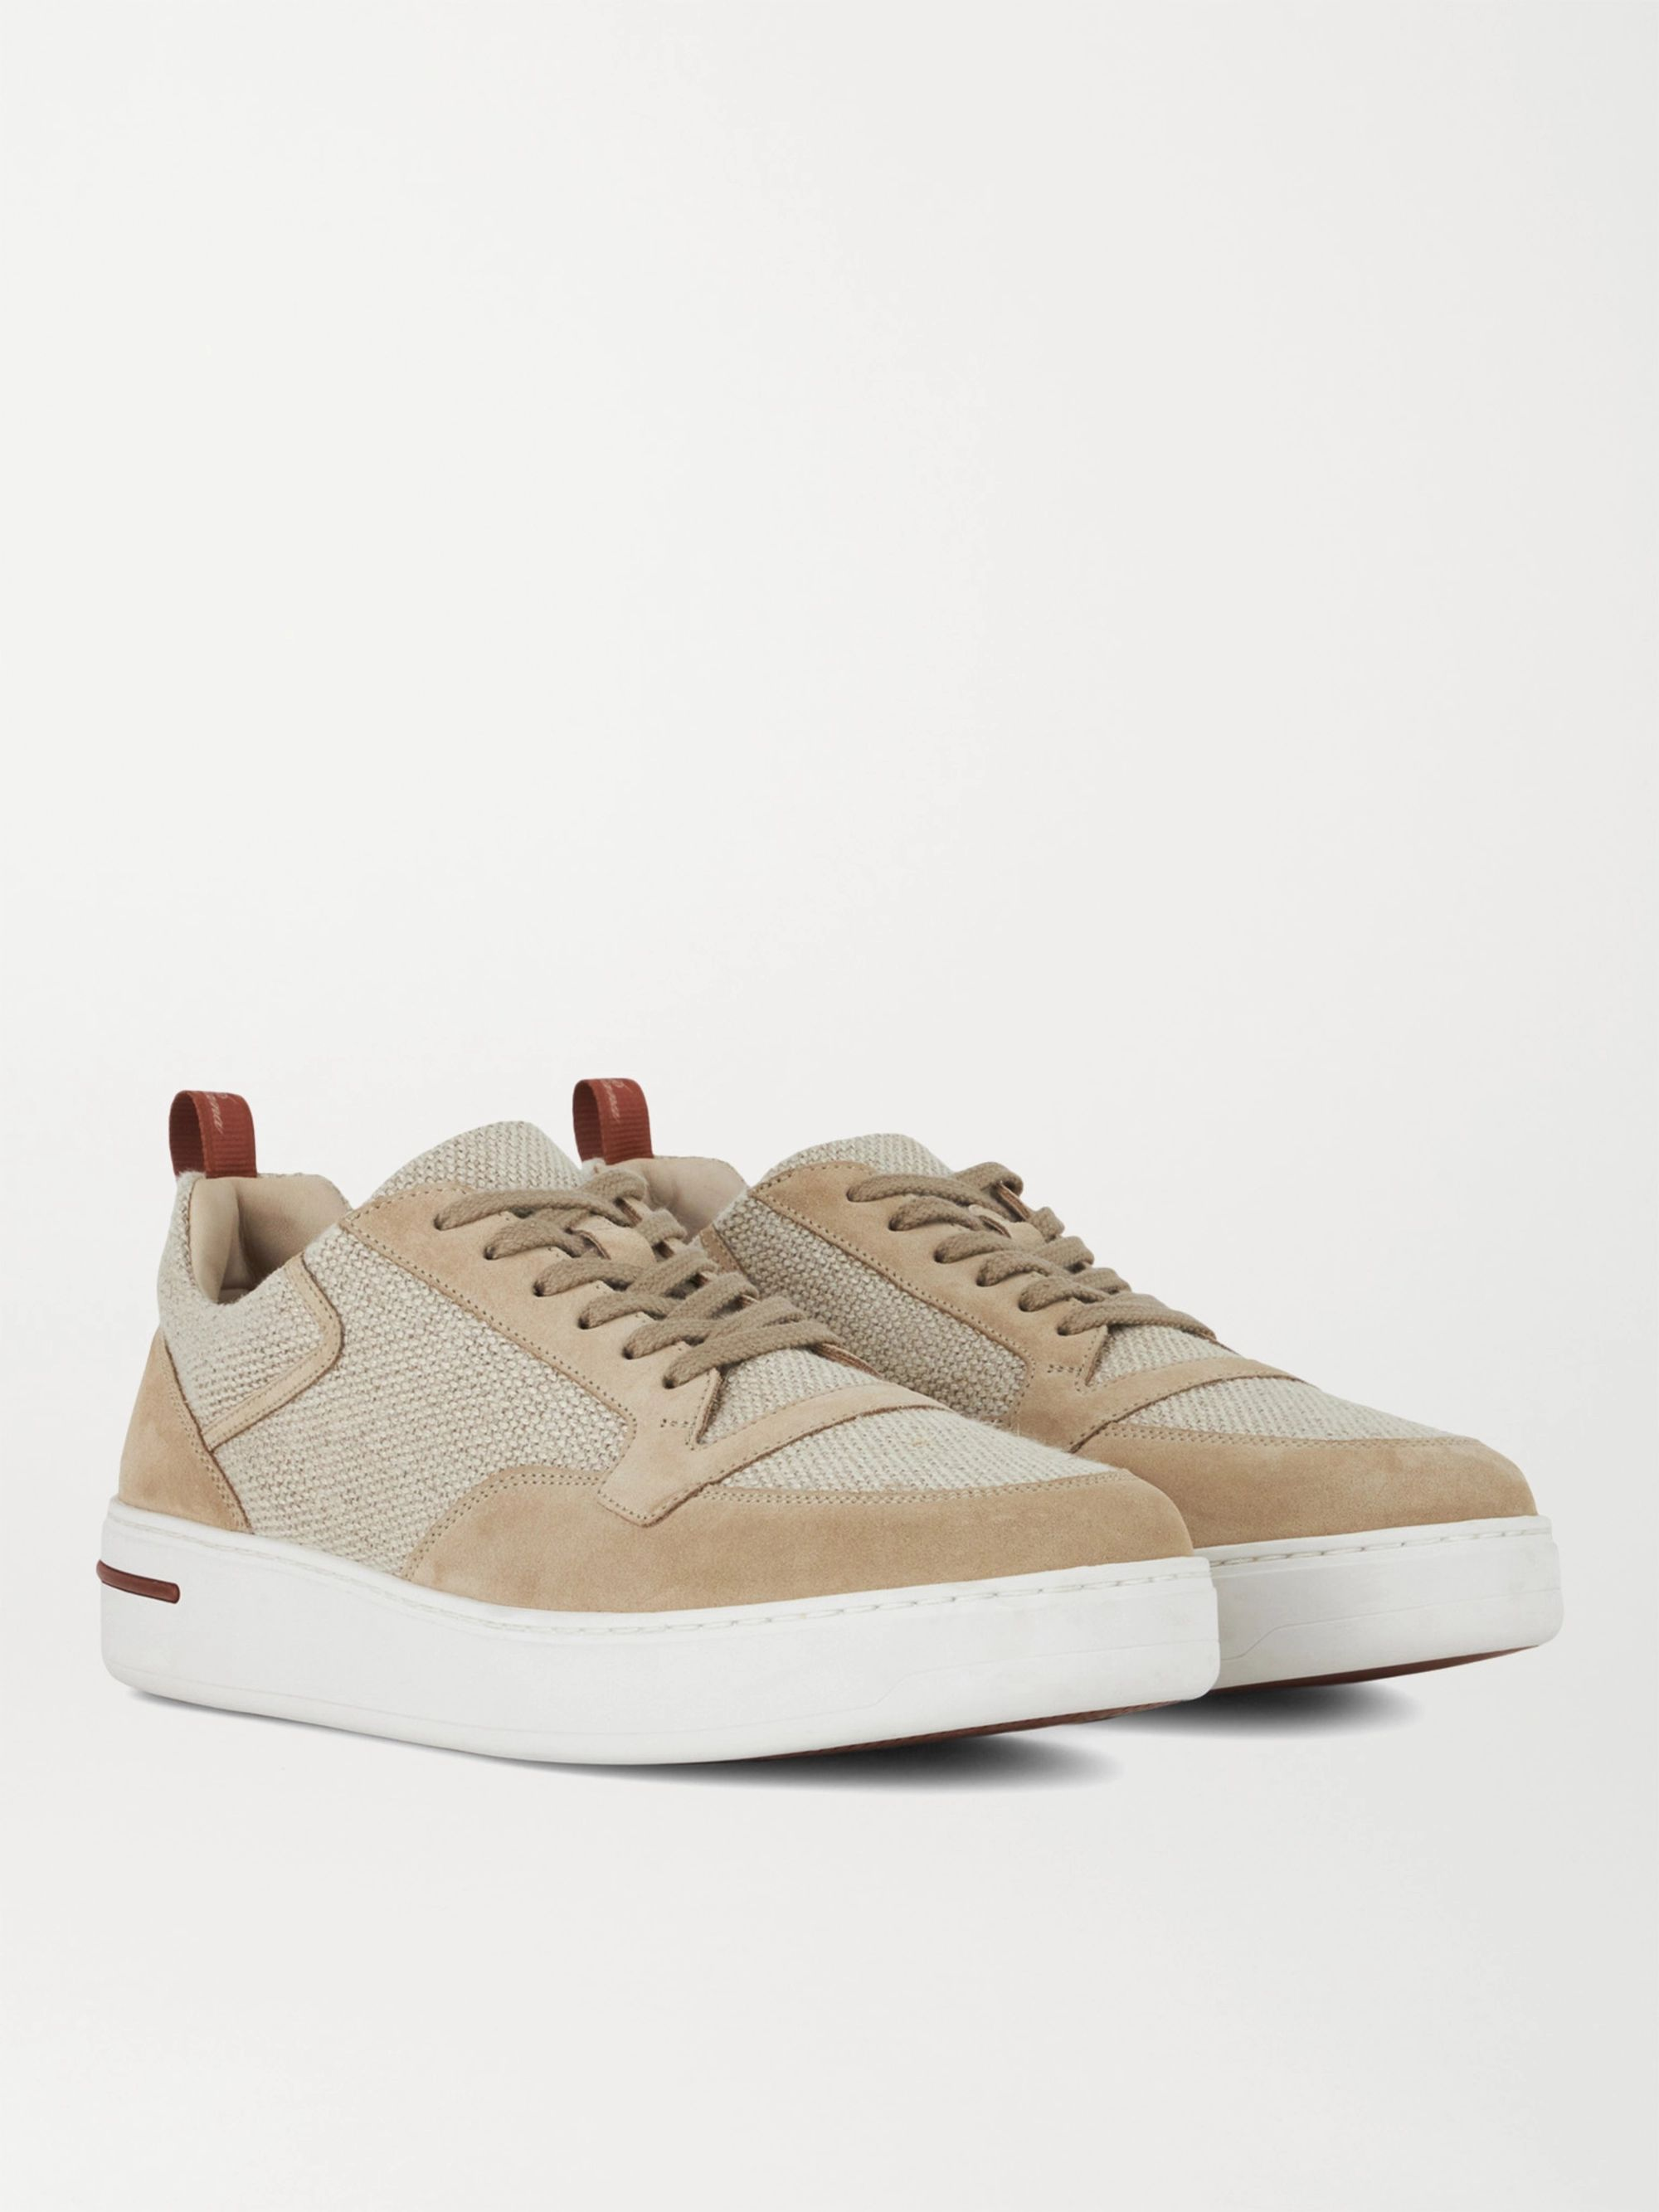 LORO PIANA Newport Walk Nubuck and Cashmere Sneakers